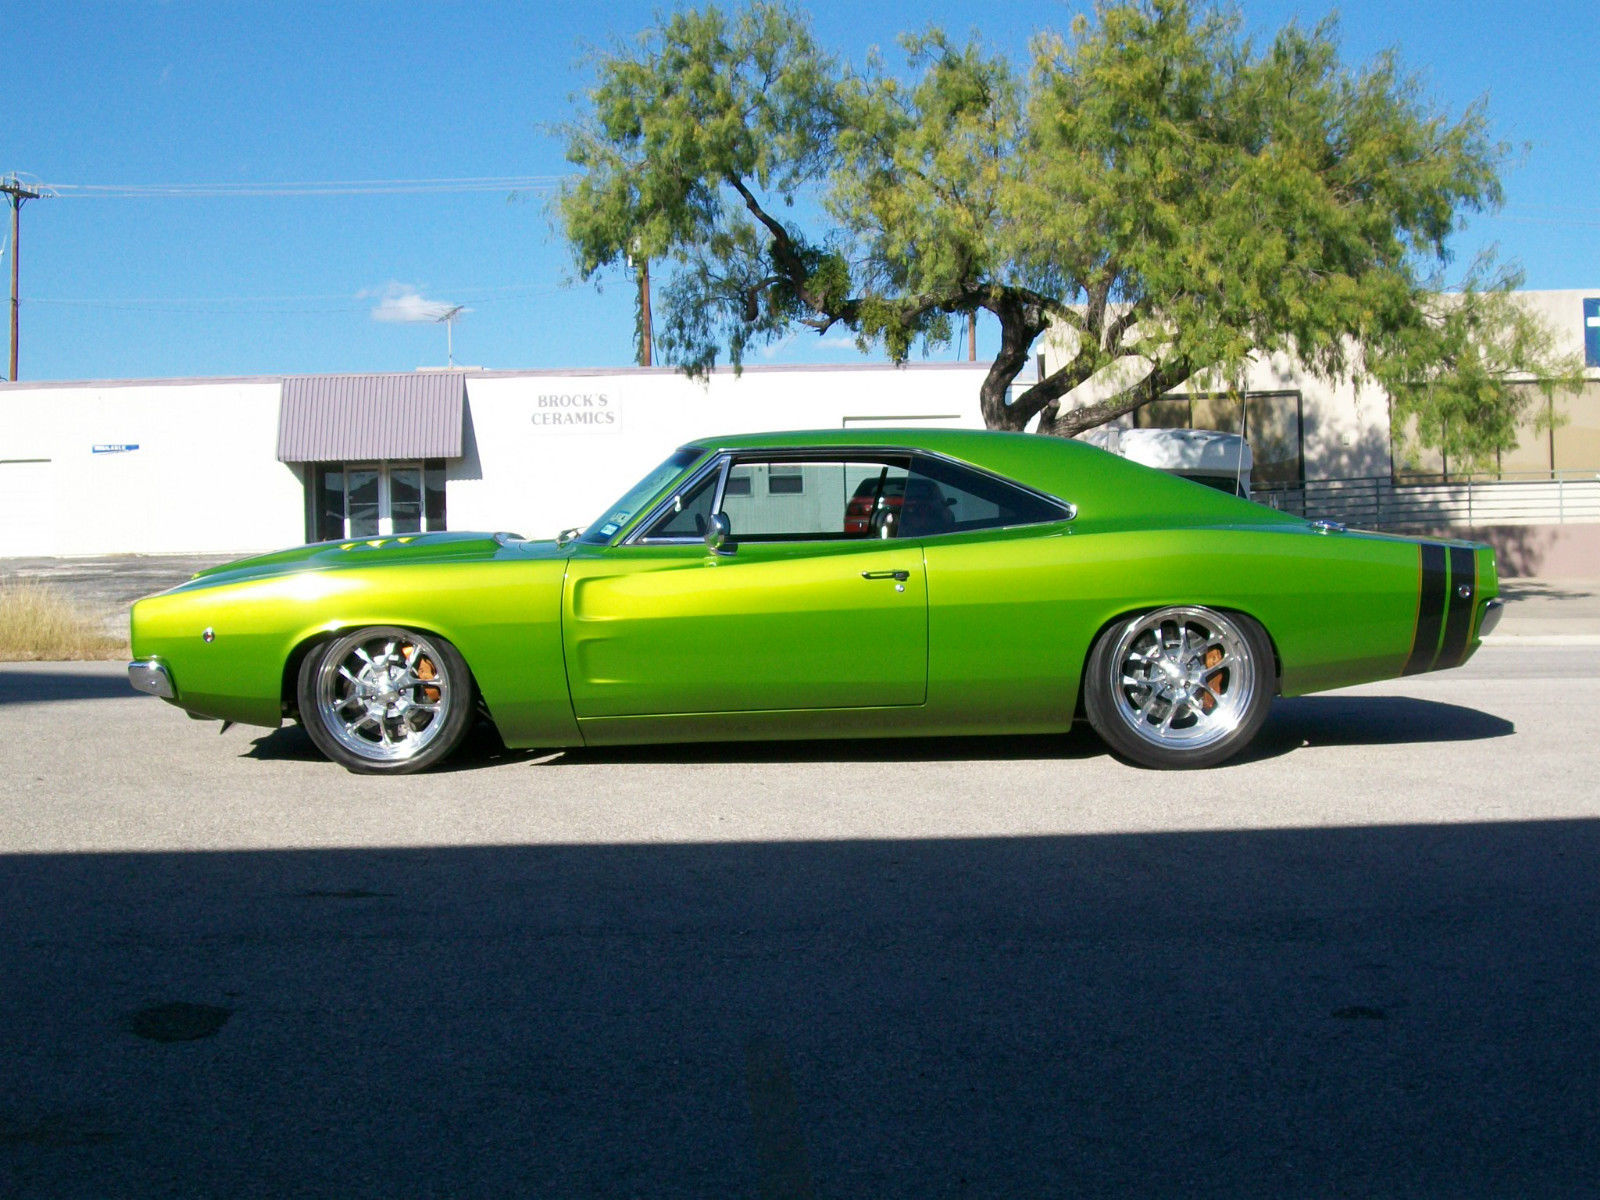 Ebay find: 1968 Dodge Charger   AmcarGuide.com - American muscle car